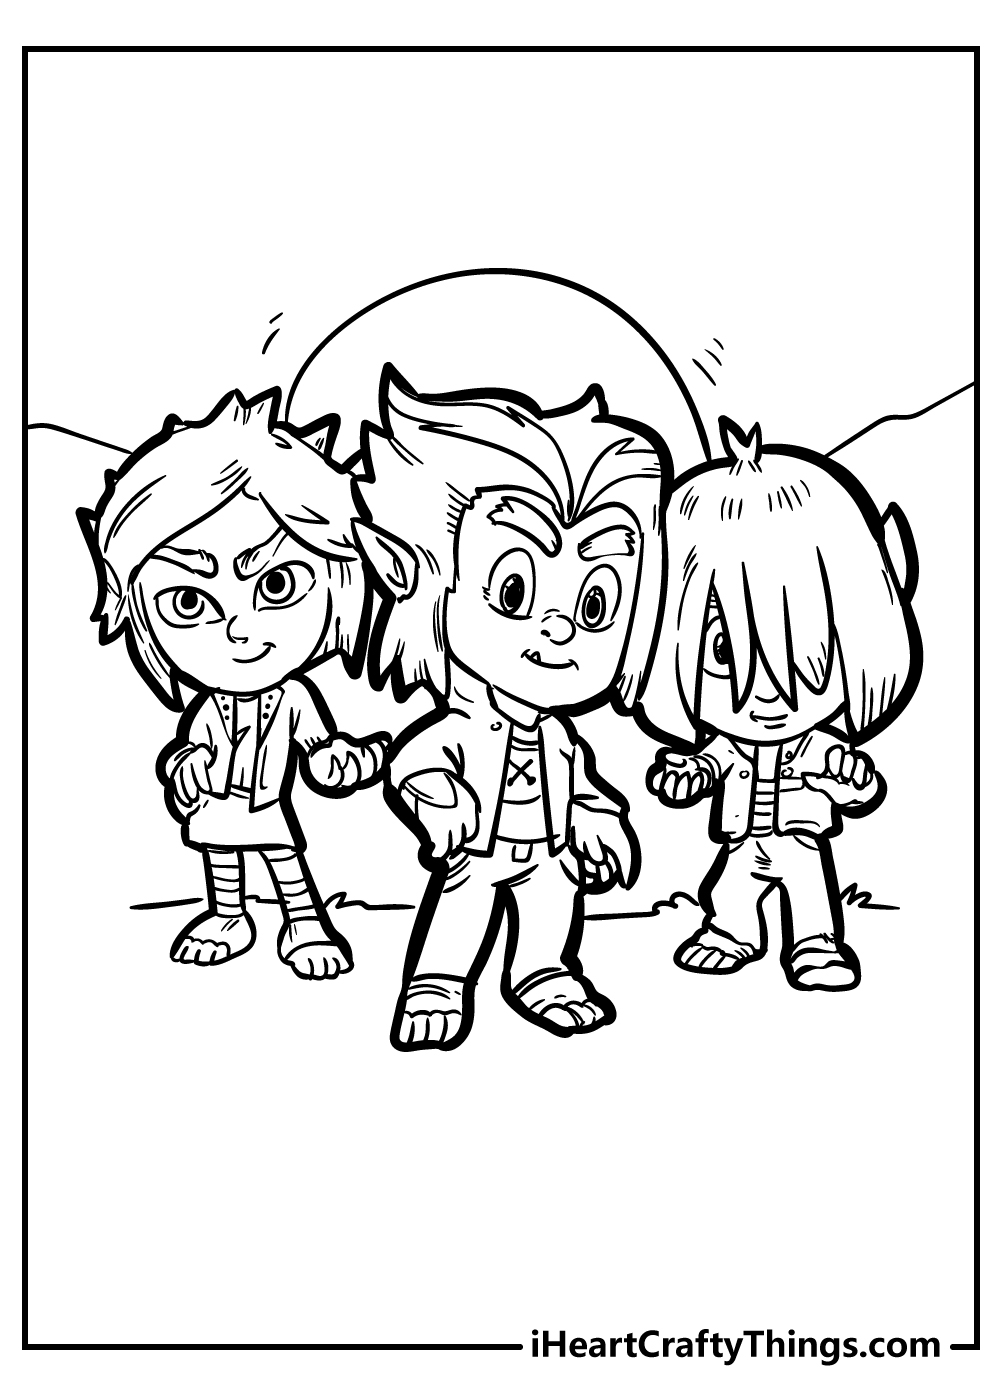 pj masks characters coloring pages free printable